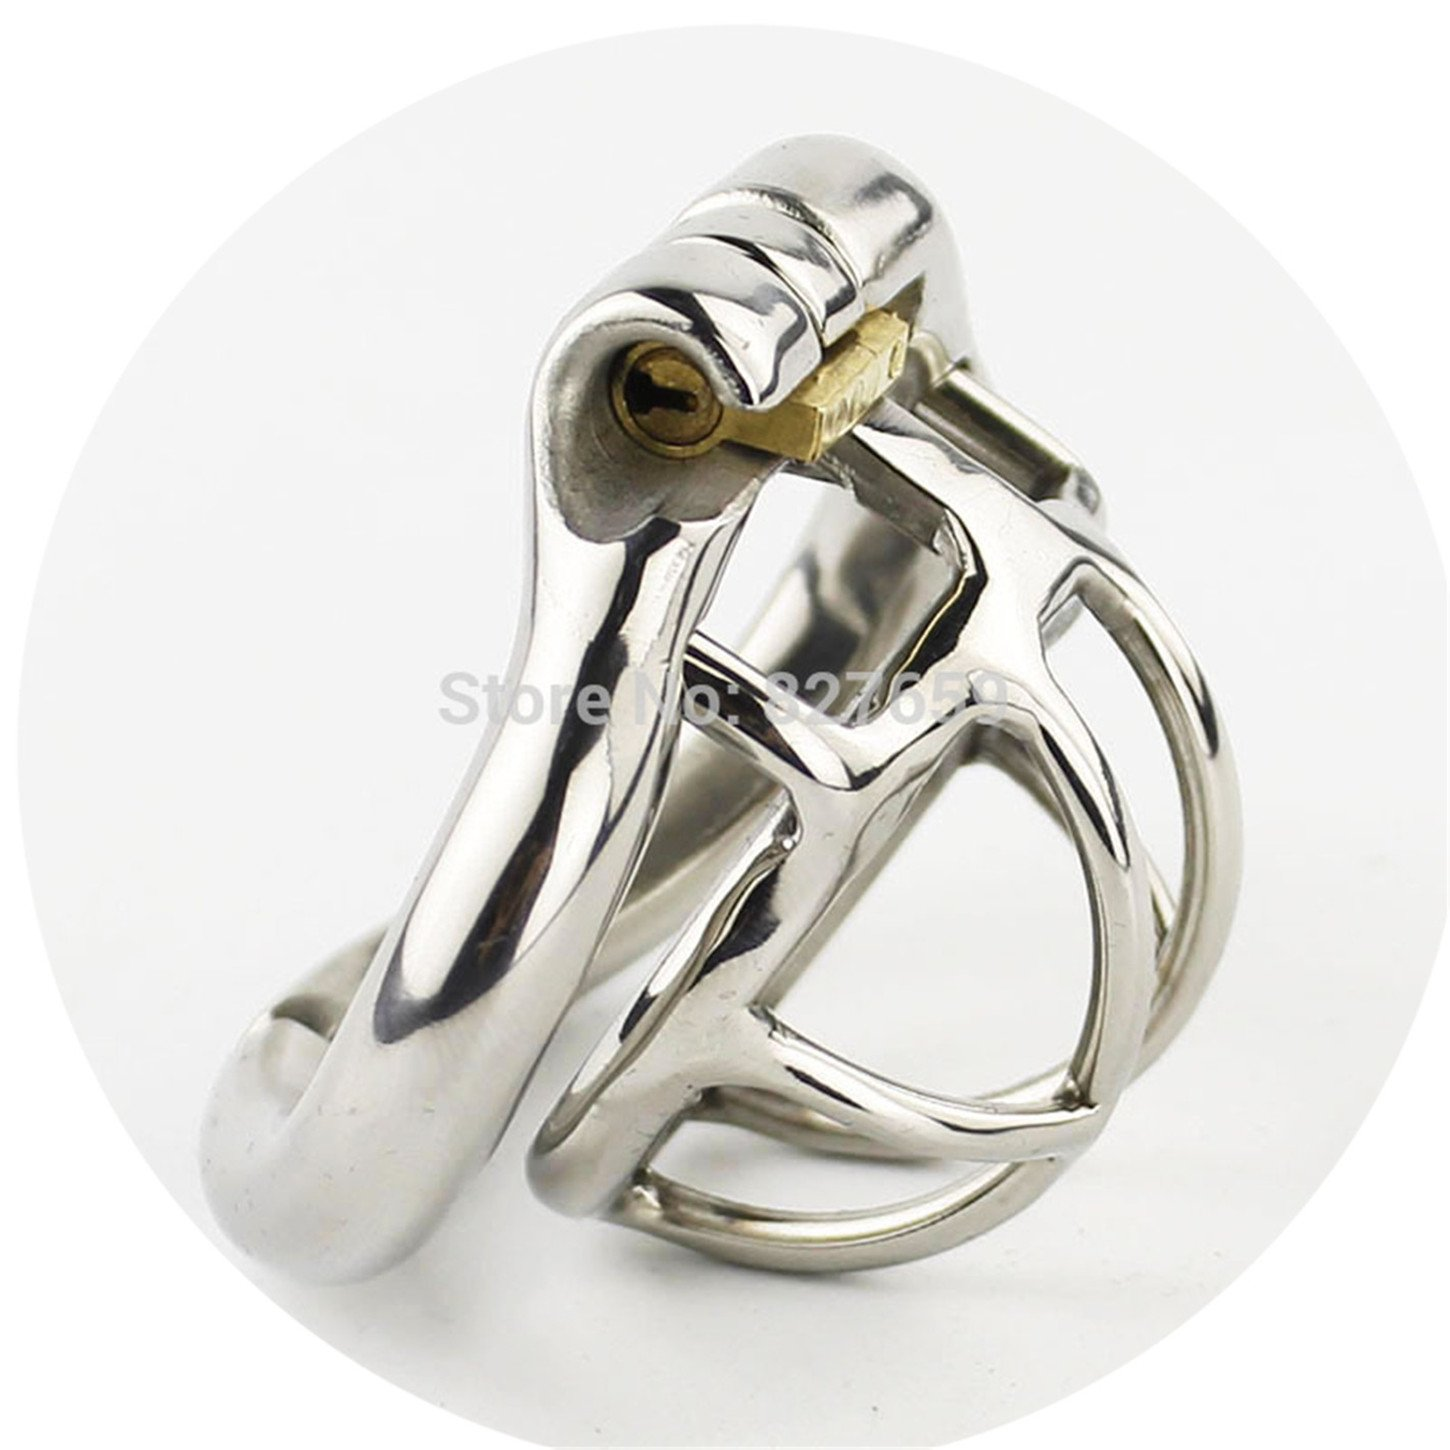 New Super Small Male Chastity Device Stainless Steel Chastity Cage with with arc-Shaped Cock Ring Sex